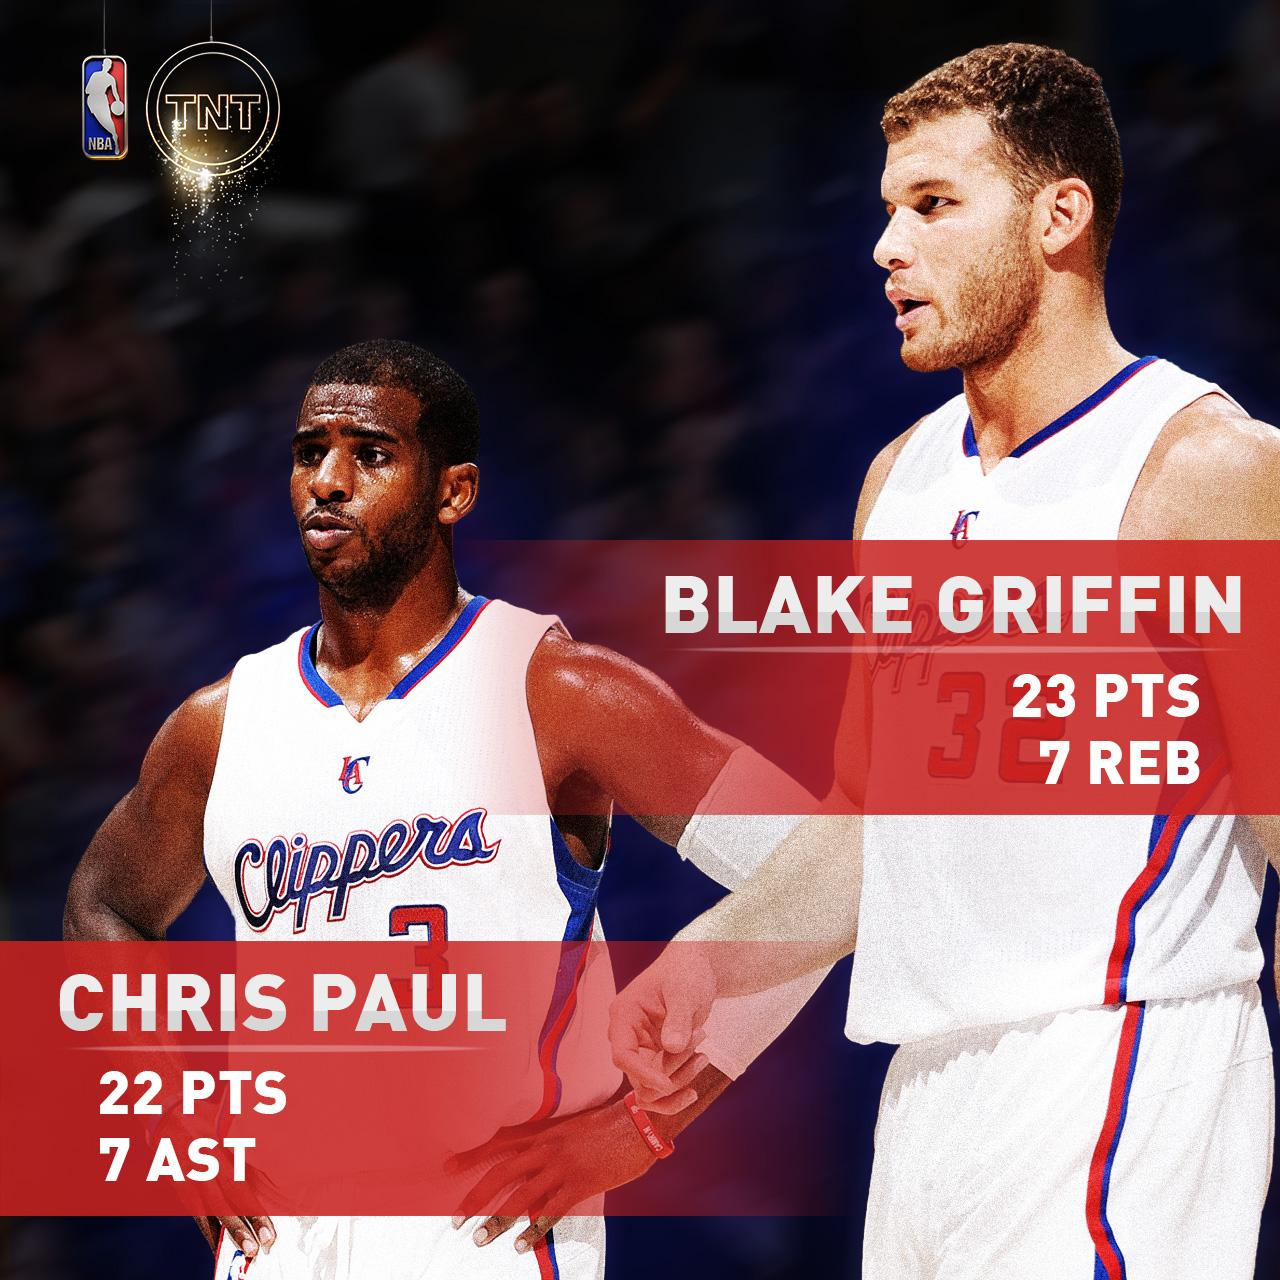 Big nights from @blakegriffin32 and @CP3 lead @LAClippers to an opening night win http://t.co/fJVWfldh2R